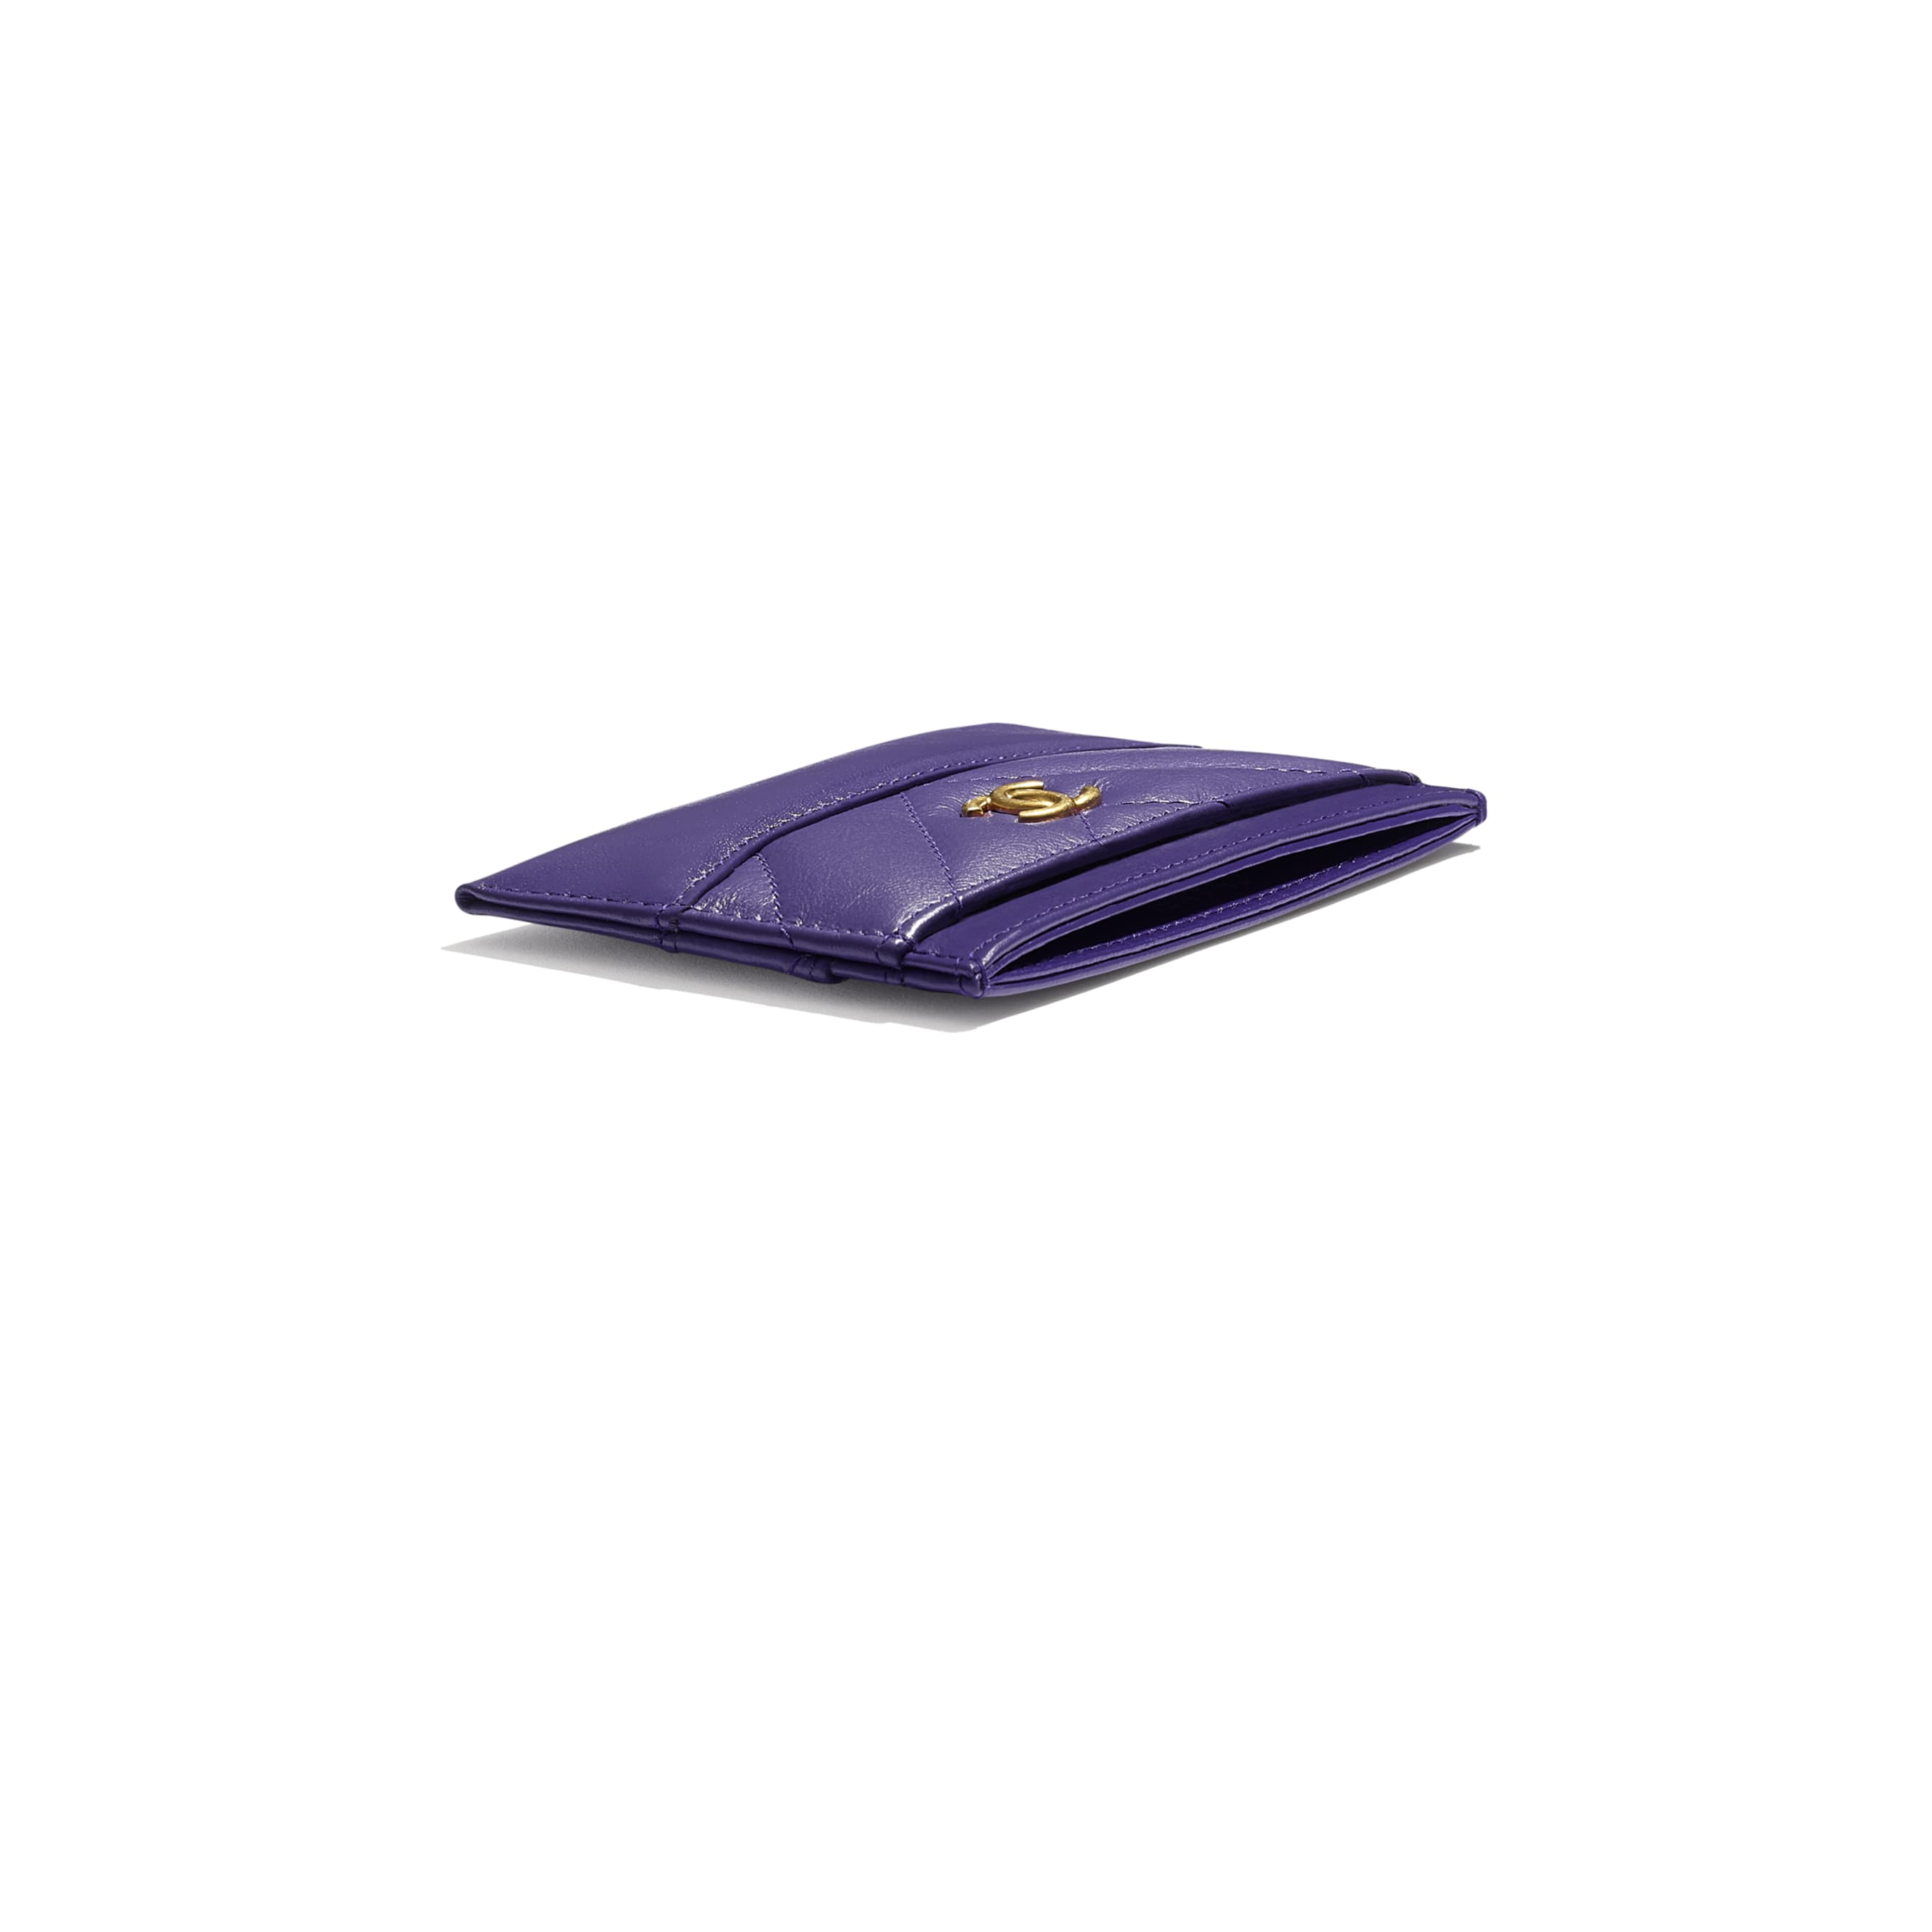 Card Holder - Purple - Aged Calfskin, Smooth Calfskin, Gold-Tone, Silver-Tone & Ruthenium-Finish Metal - CHANEL - Extra view - see standard sized version